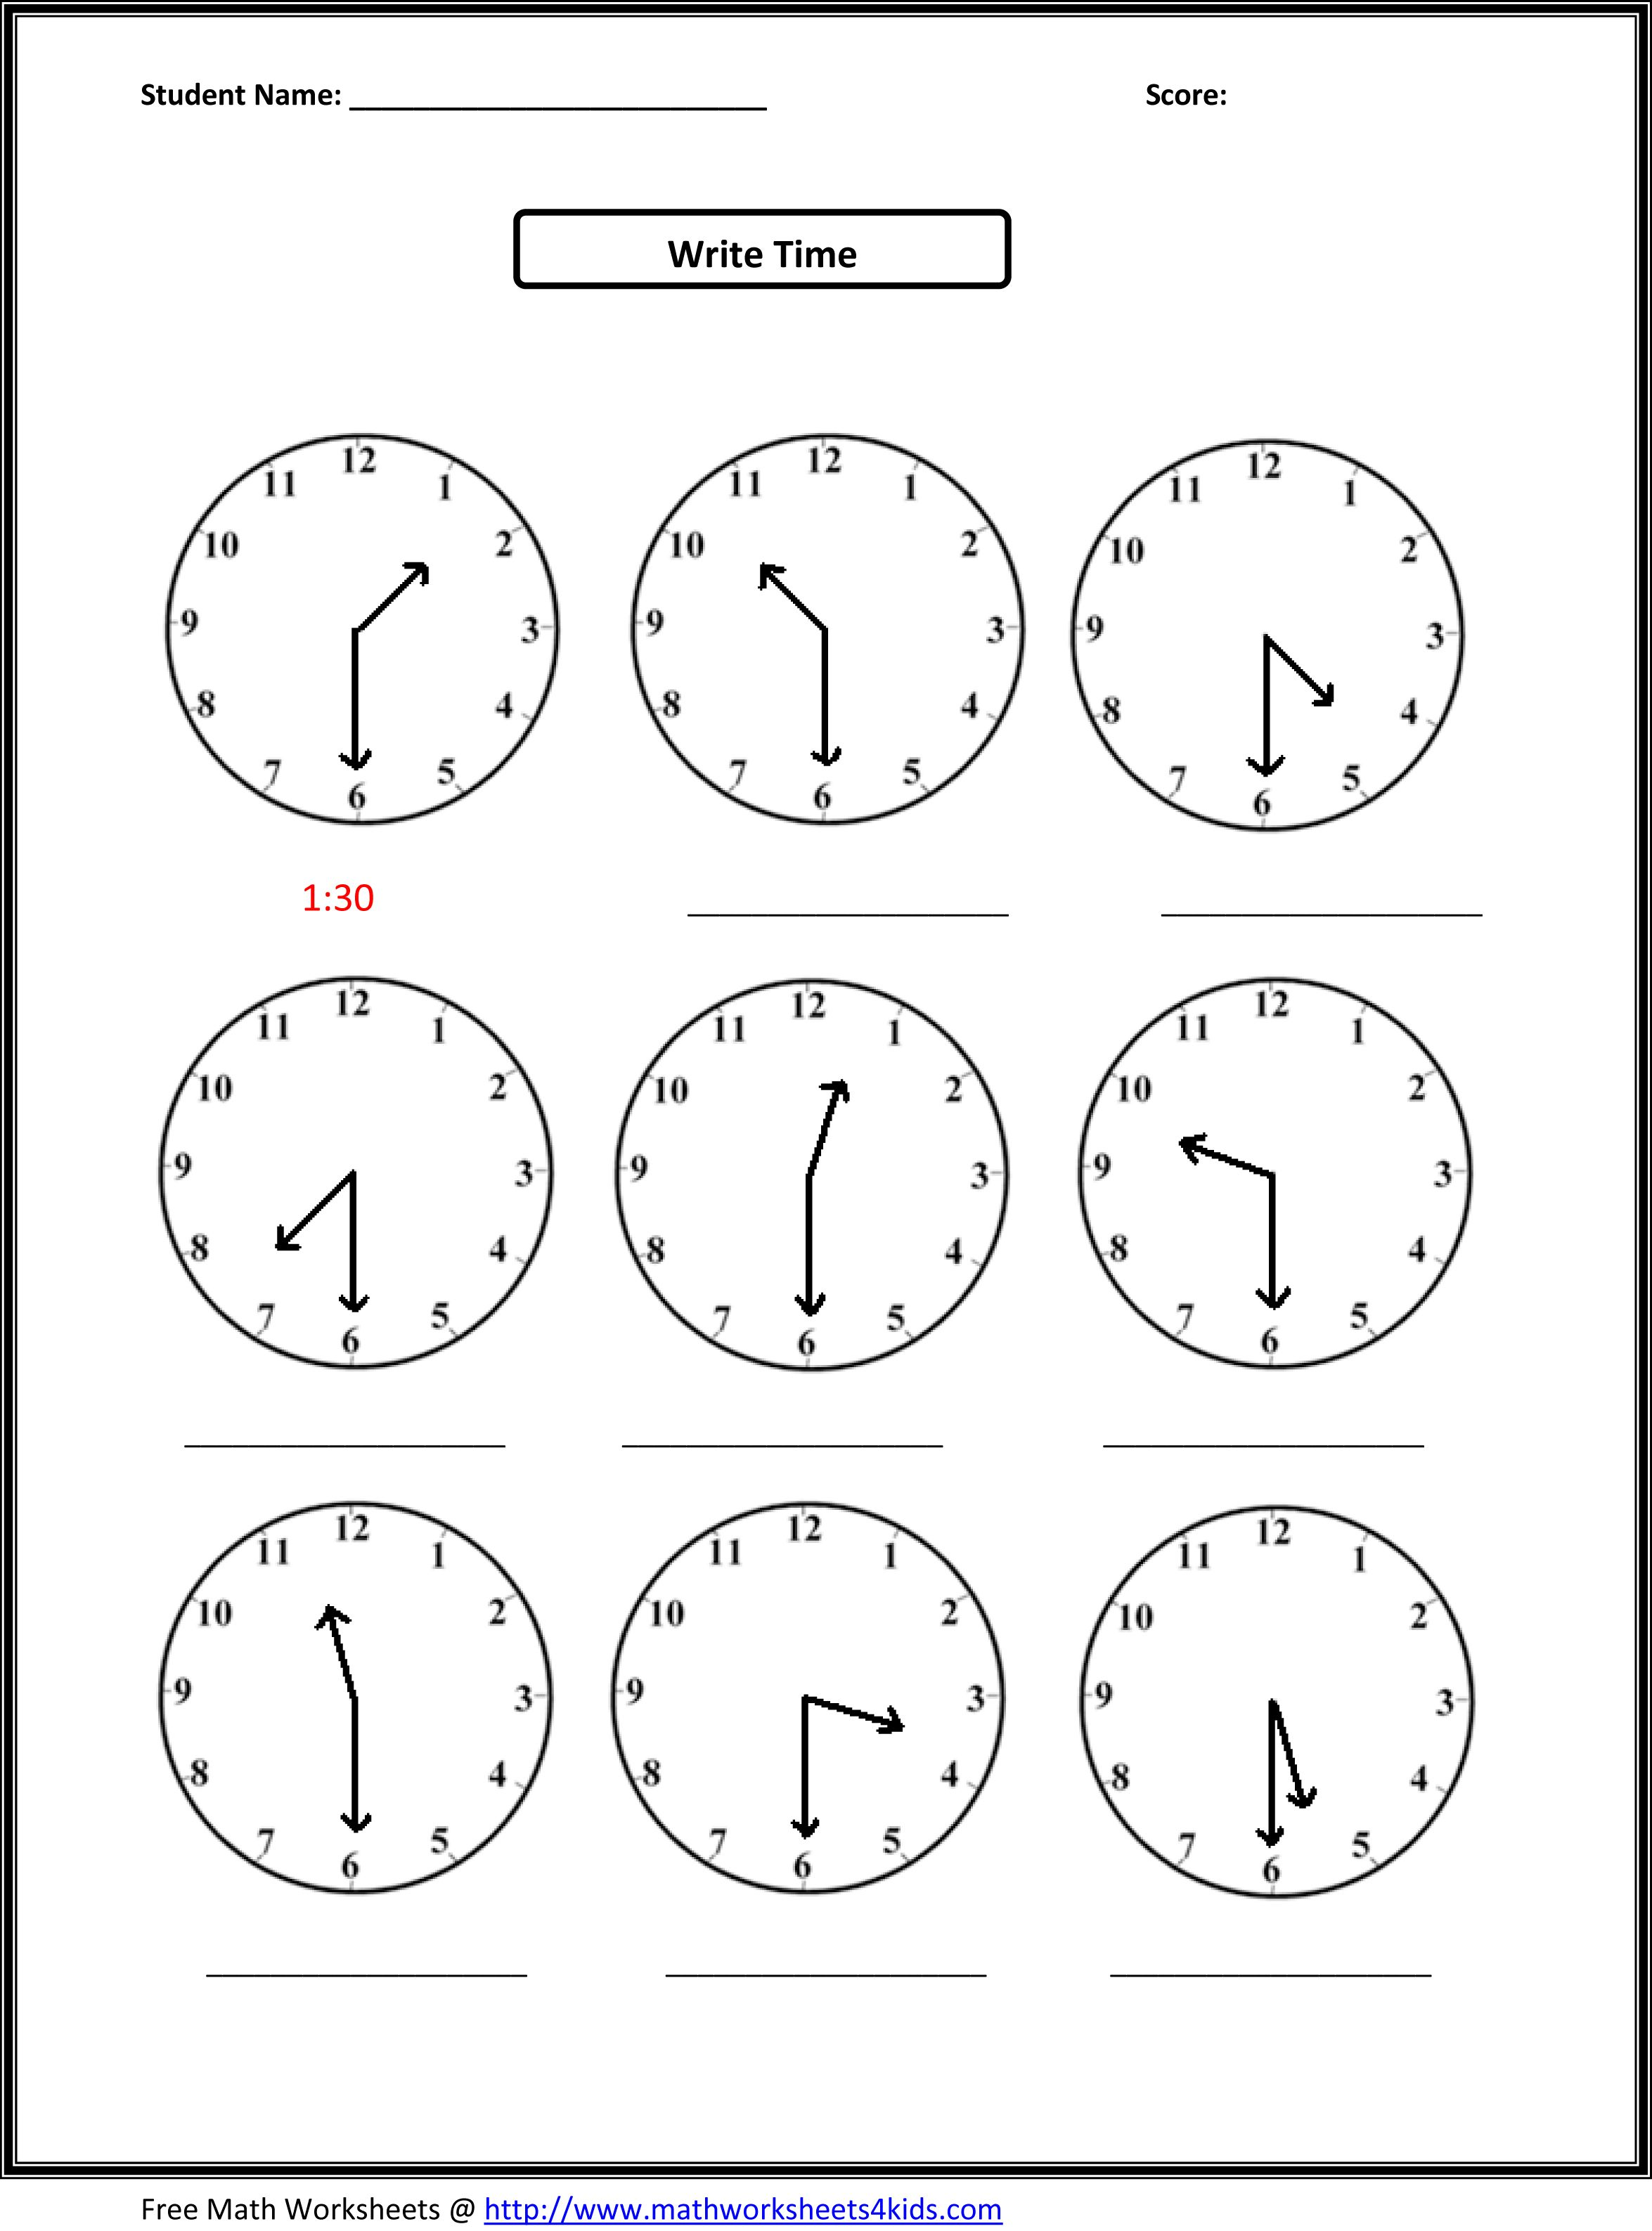 Proatmealus  Unique Worksheet On Time For Grade   Reocurent With Exquisite Free Printable Telling Time Worksheets Nd Grade  Reocurent With Alluring Hibernation Worksheets For Kids Also Reception Year Worksheets In Addition Primary  English Worksheets And Free Printable Nd Grade Math Word Problems Worksheets As Well As Worksheets On Conjunctions For Grade  Additionally Consonant Blends Worksheets Free From Reocurentcom With Proatmealus  Exquisite Worksheet On Time For Grade   Reocurent With Alluring Free Printable Telling Time Worksheets Nd Grade  Reocurent And Unique Hibernation Worksheets For Kids Also Reception Year Worksheets In Addition Primary  English Worksheets From Reocurentcom